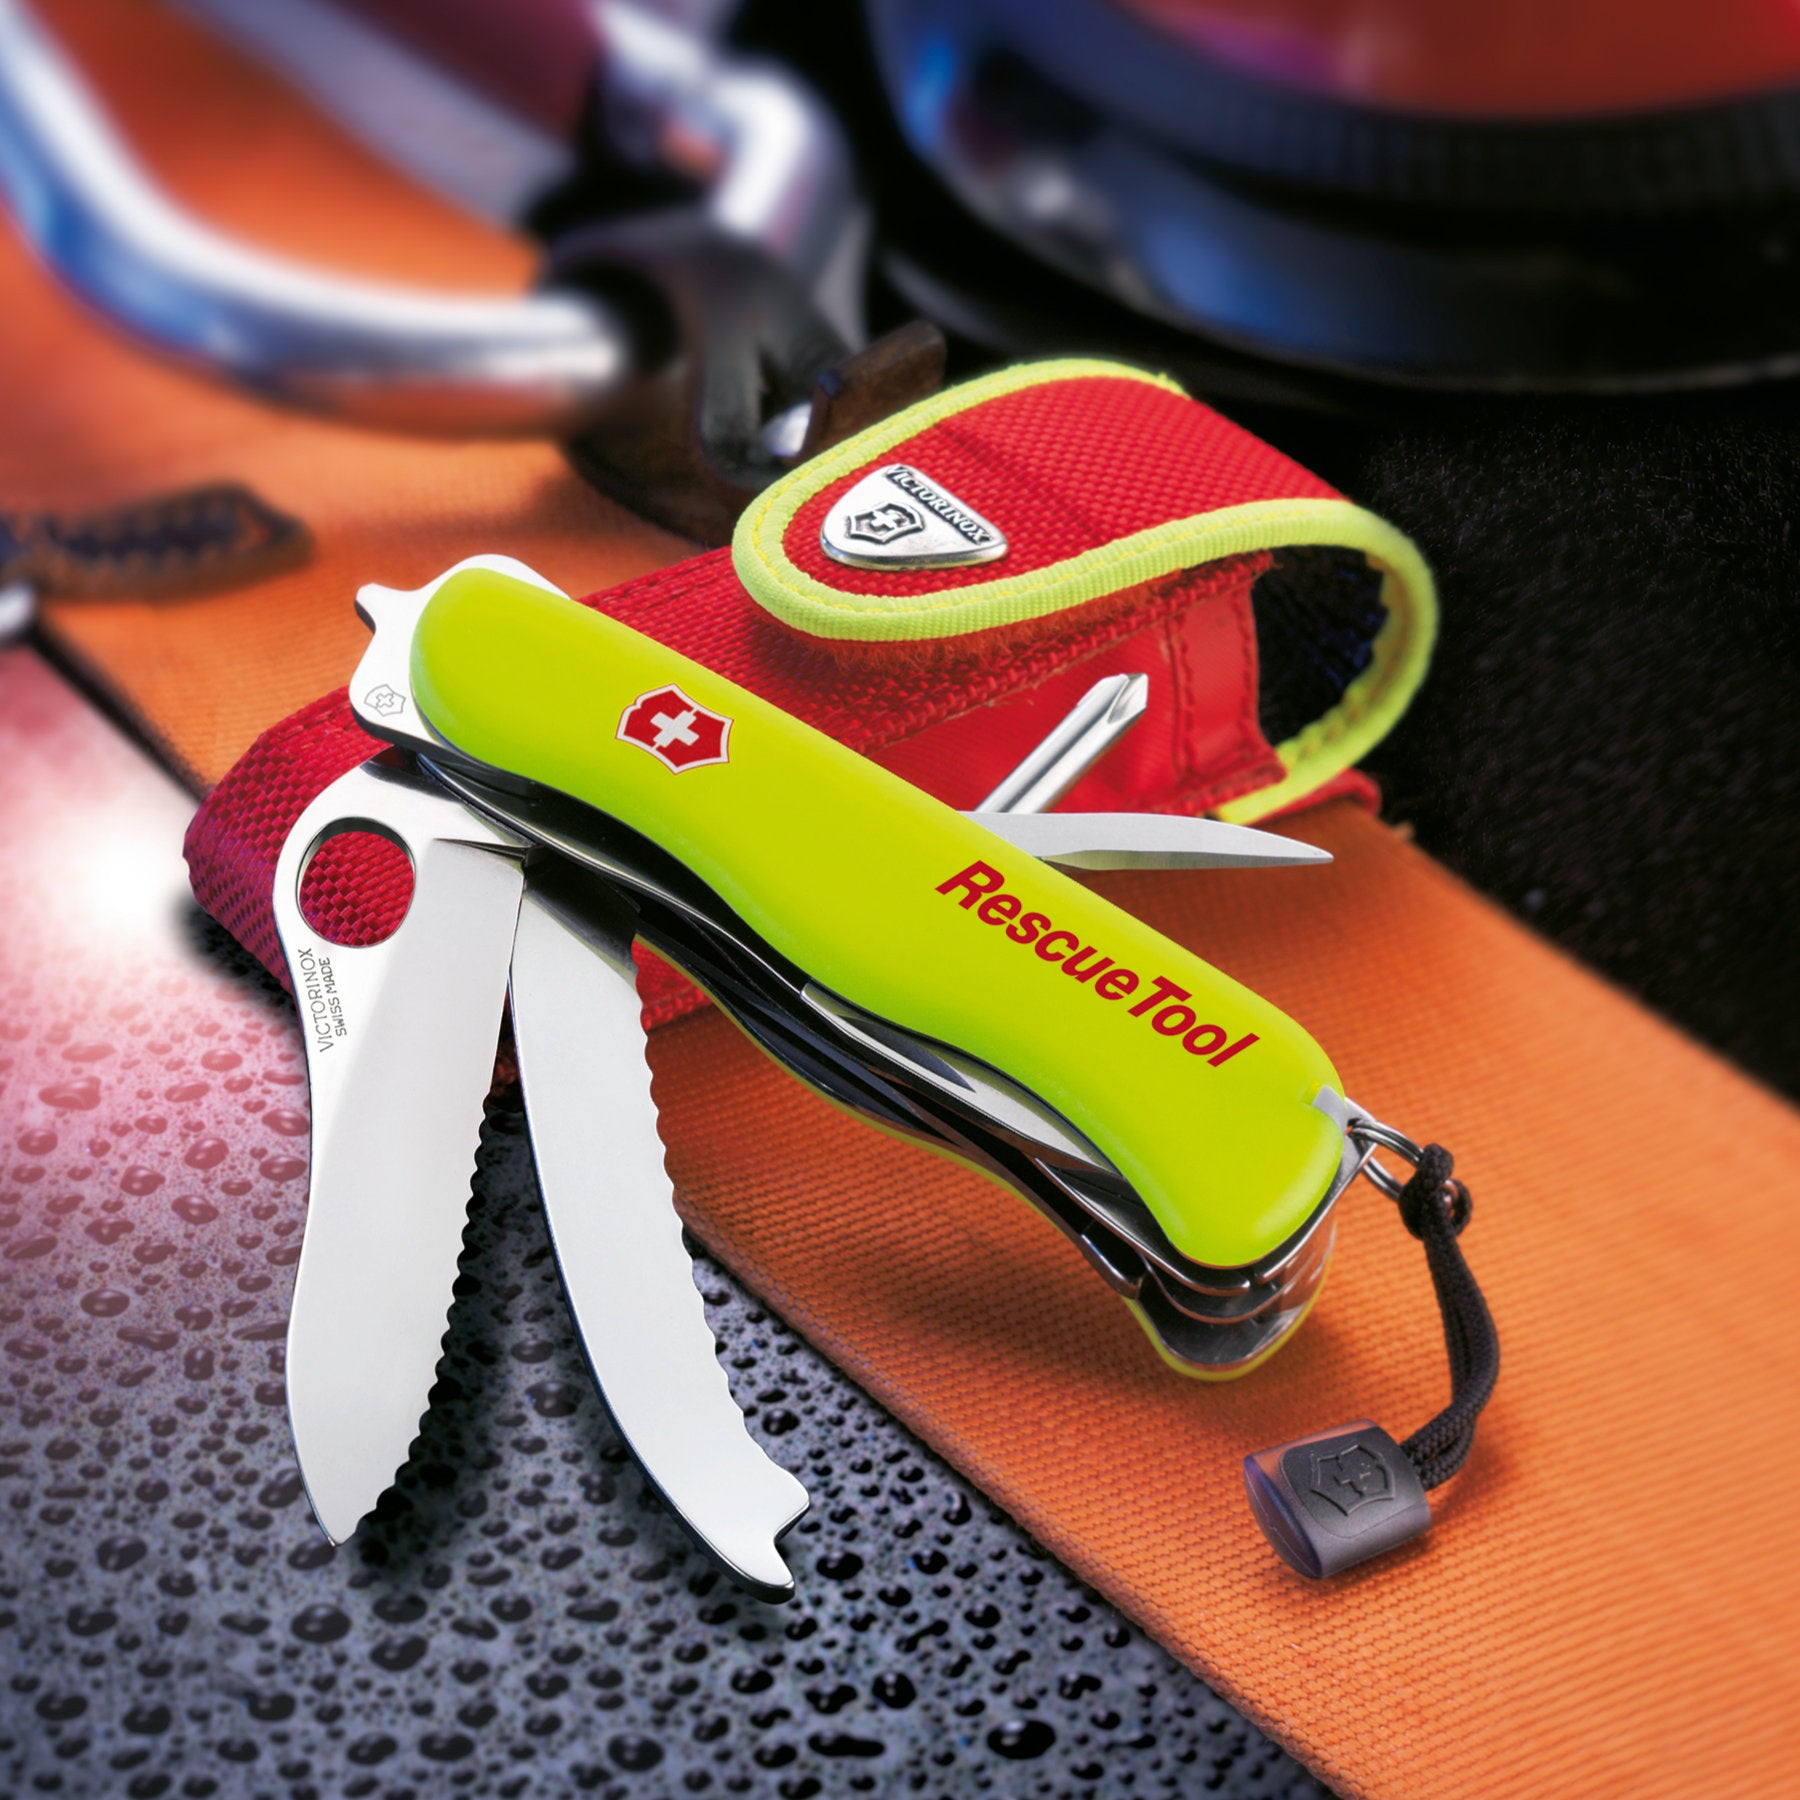 Emergency Swiss Army Knives